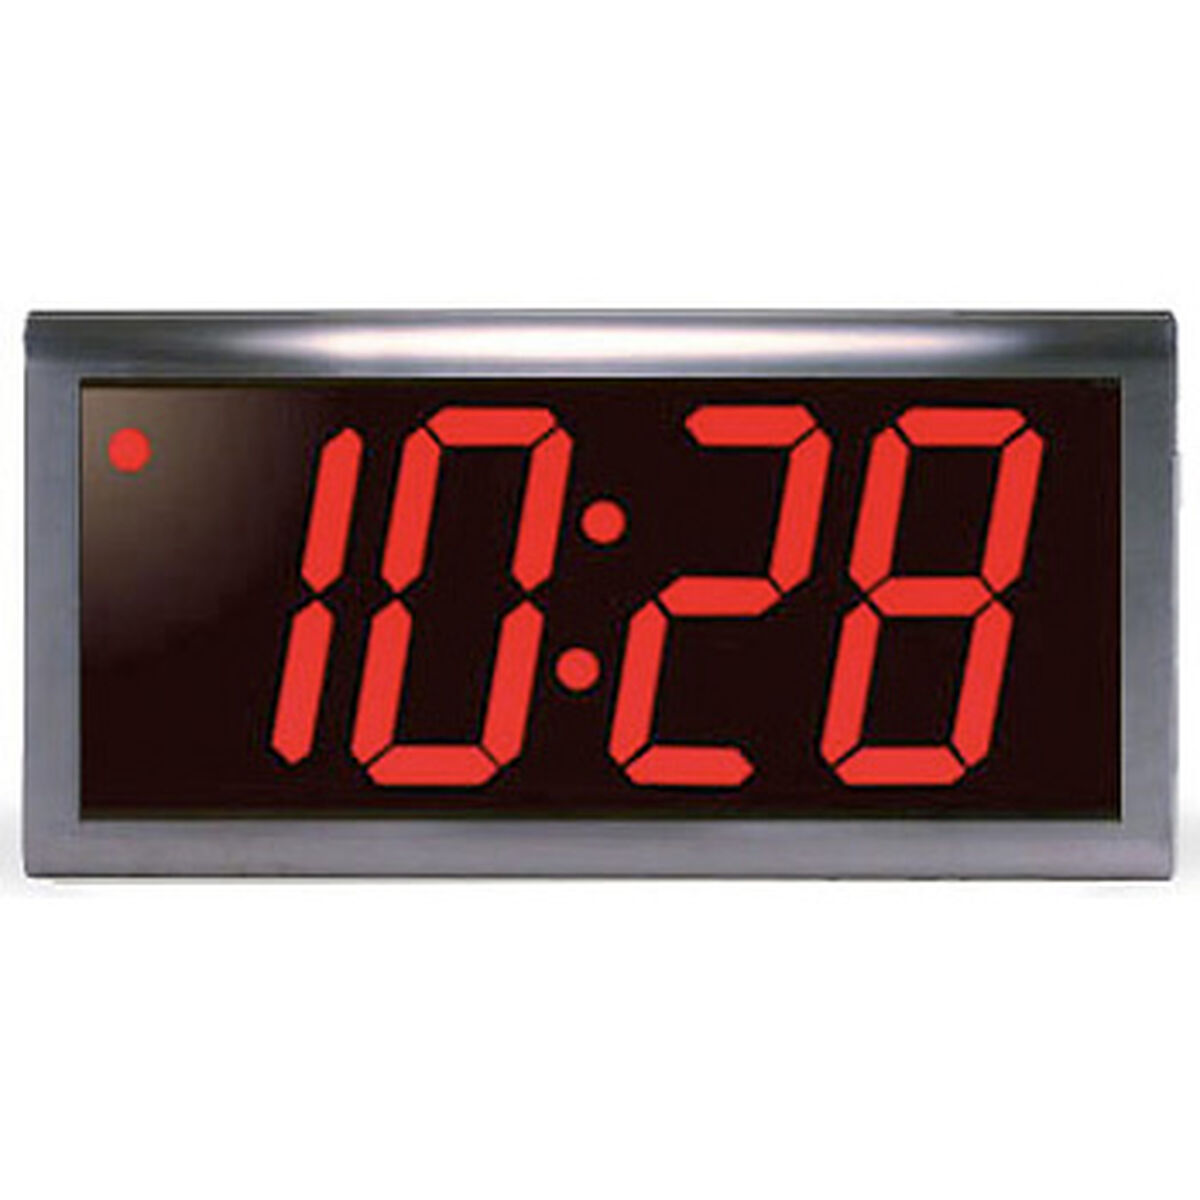 Digital wall clocks 4 digit 4 red led stainless steel poe clock amipublicfo Gallery